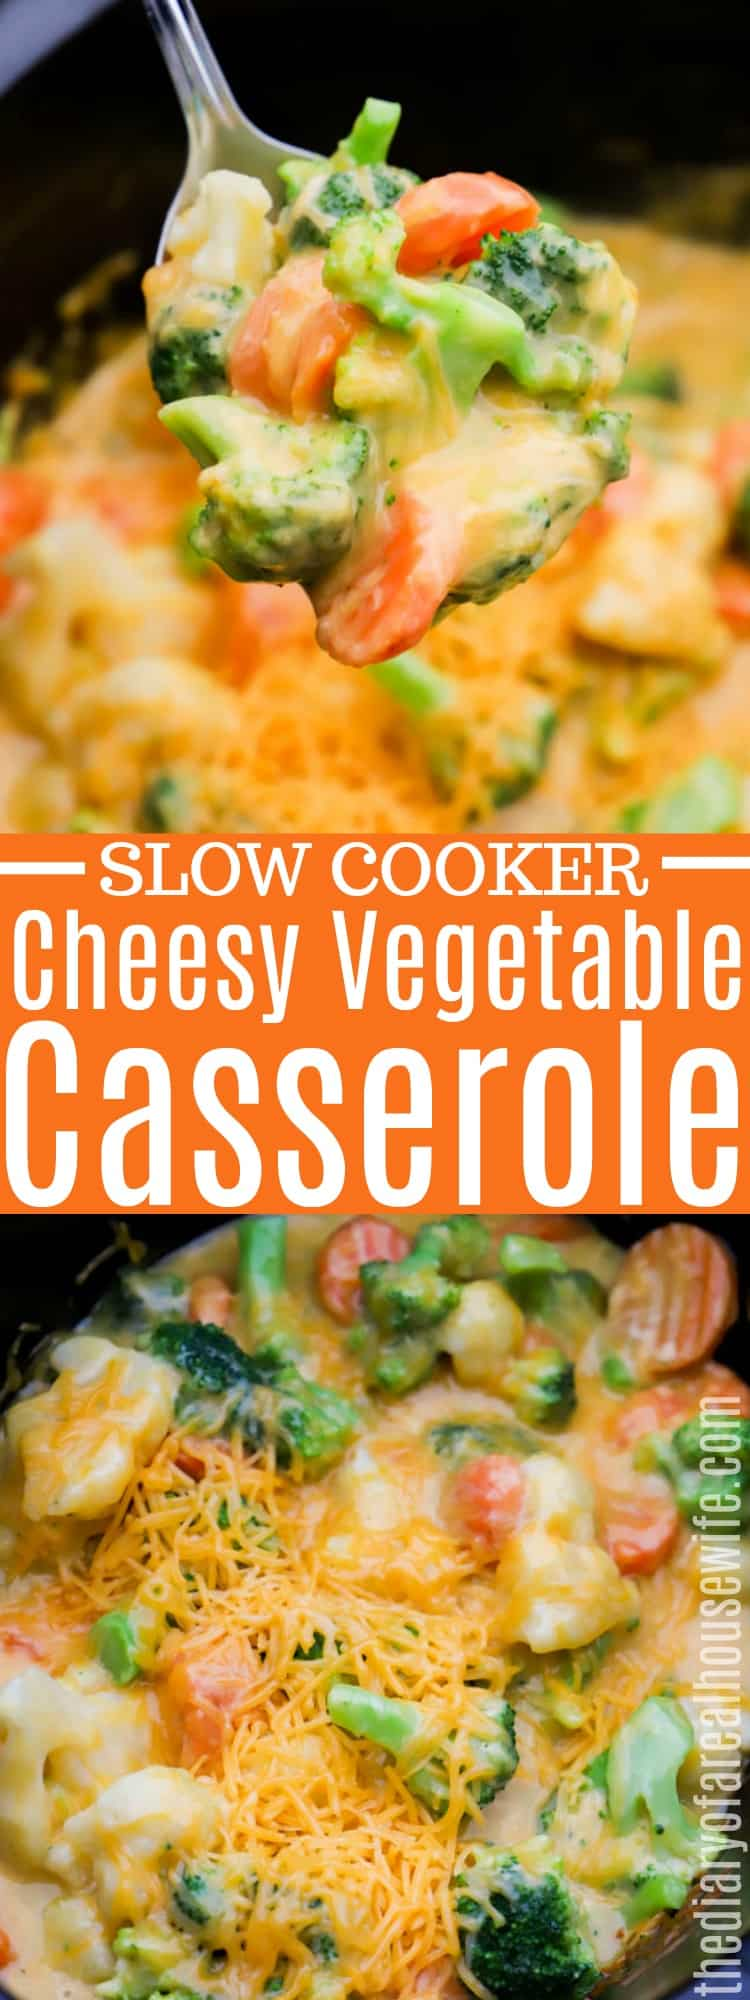 Slow Cooker Cheesy Vegetable Casserole